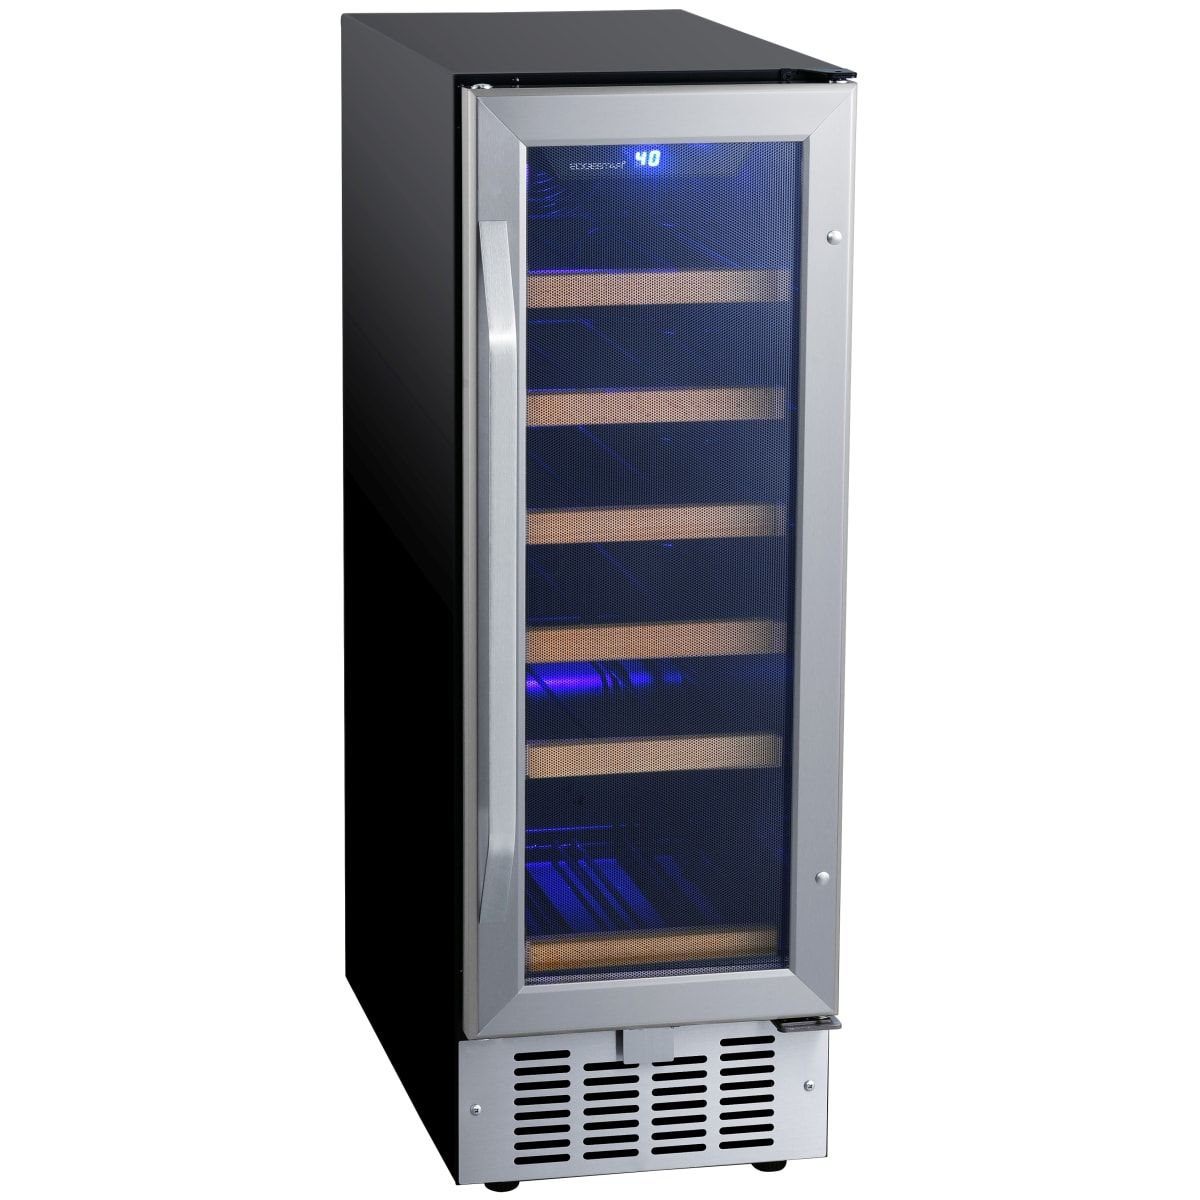 Edgestar Cwr182sz Wine Chiller Stainless Steel Bottle